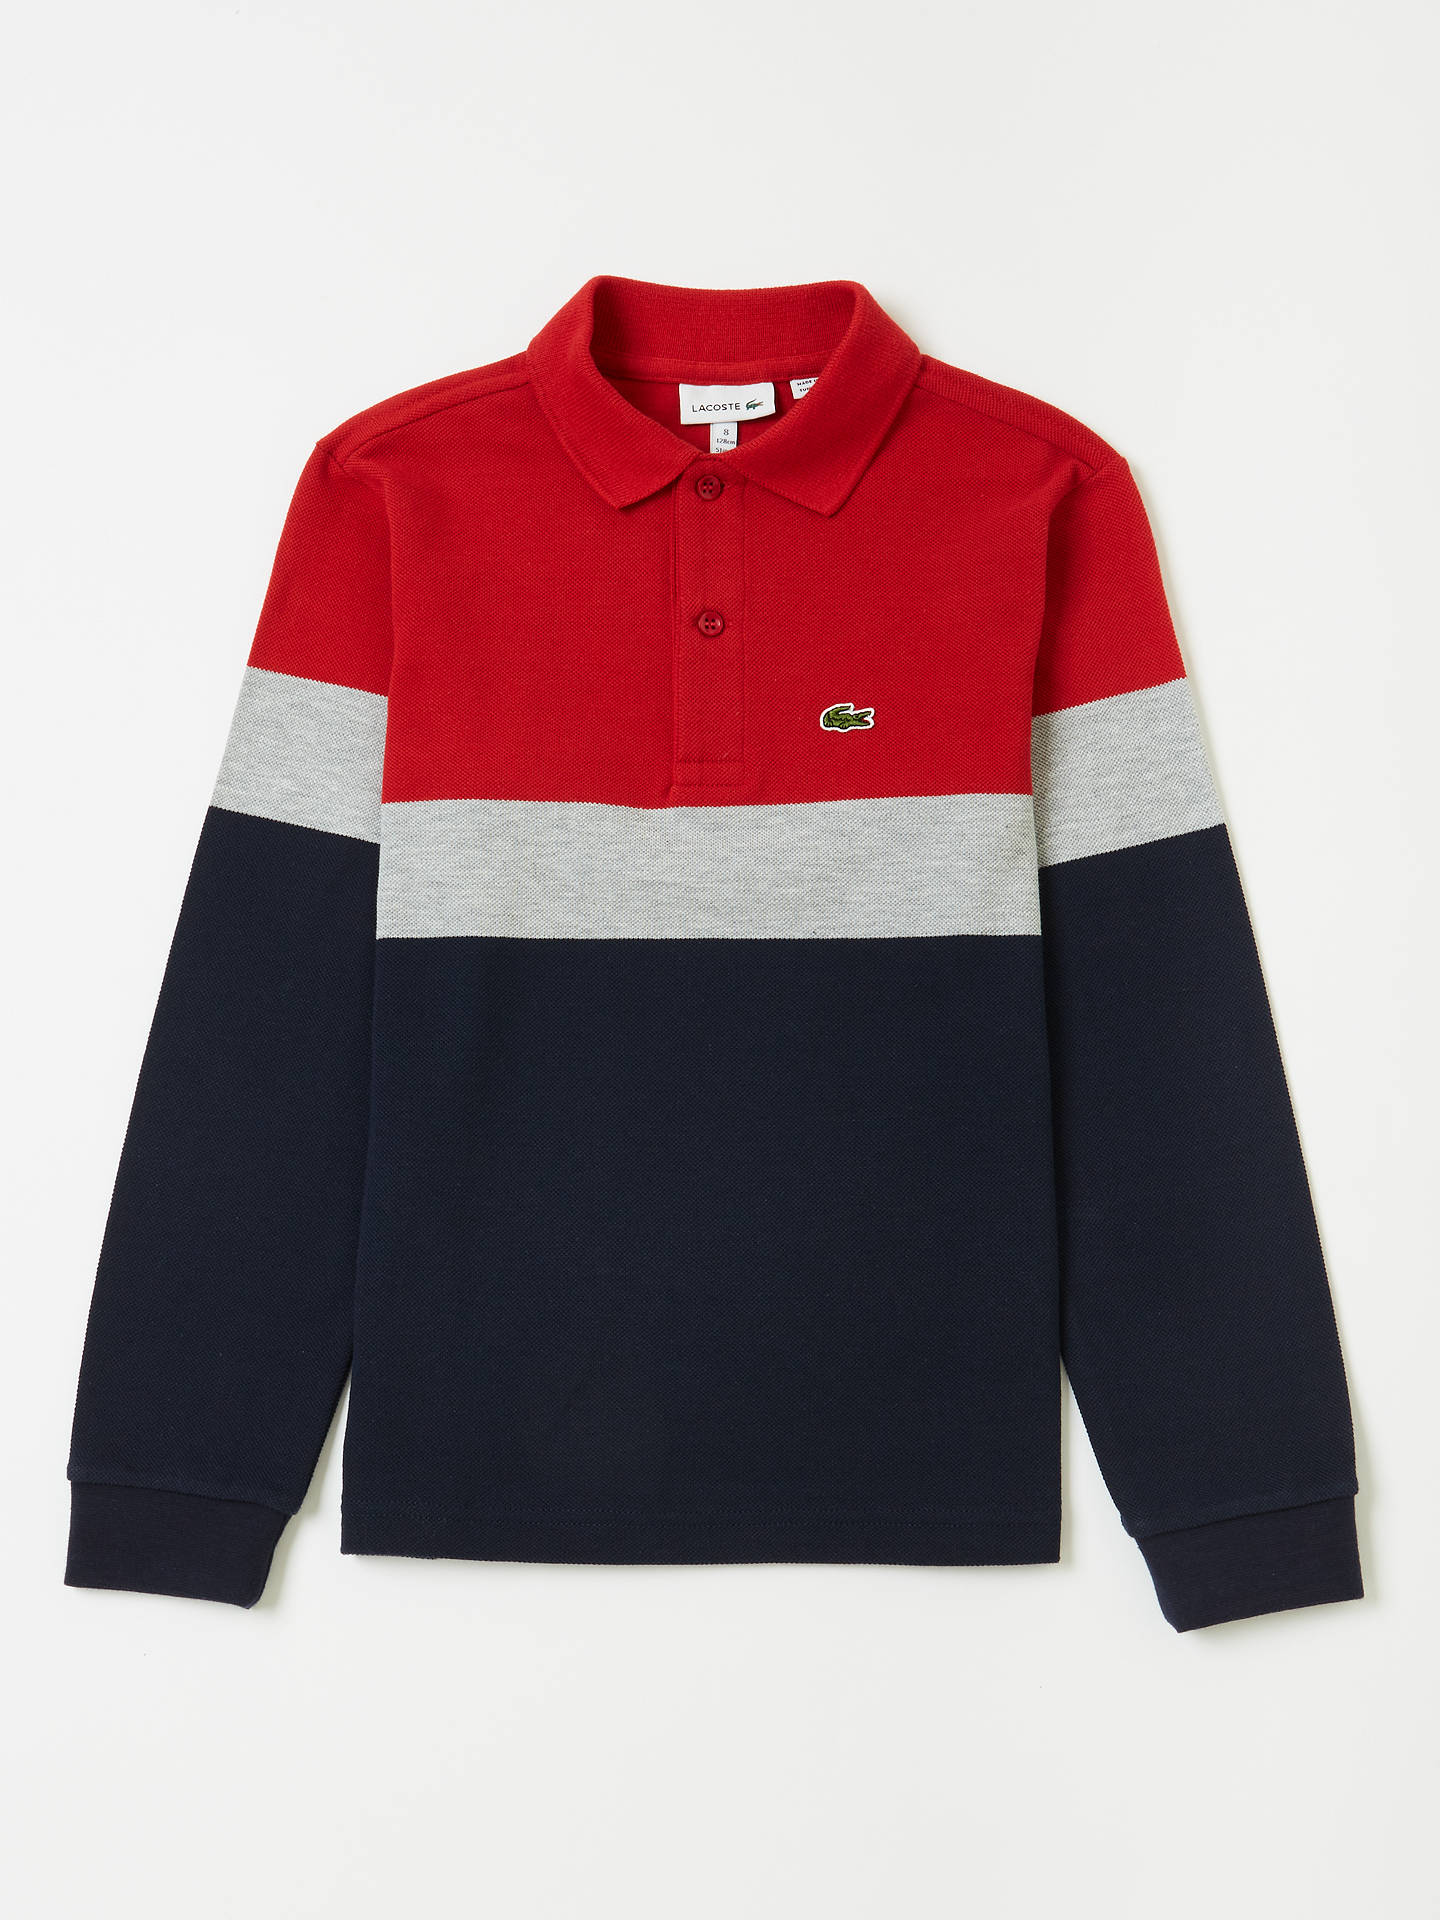 802ab7459d Buy Lacoste Boys' Stripe Polo Shirt, Multi, 12 years Online at johnlewis.